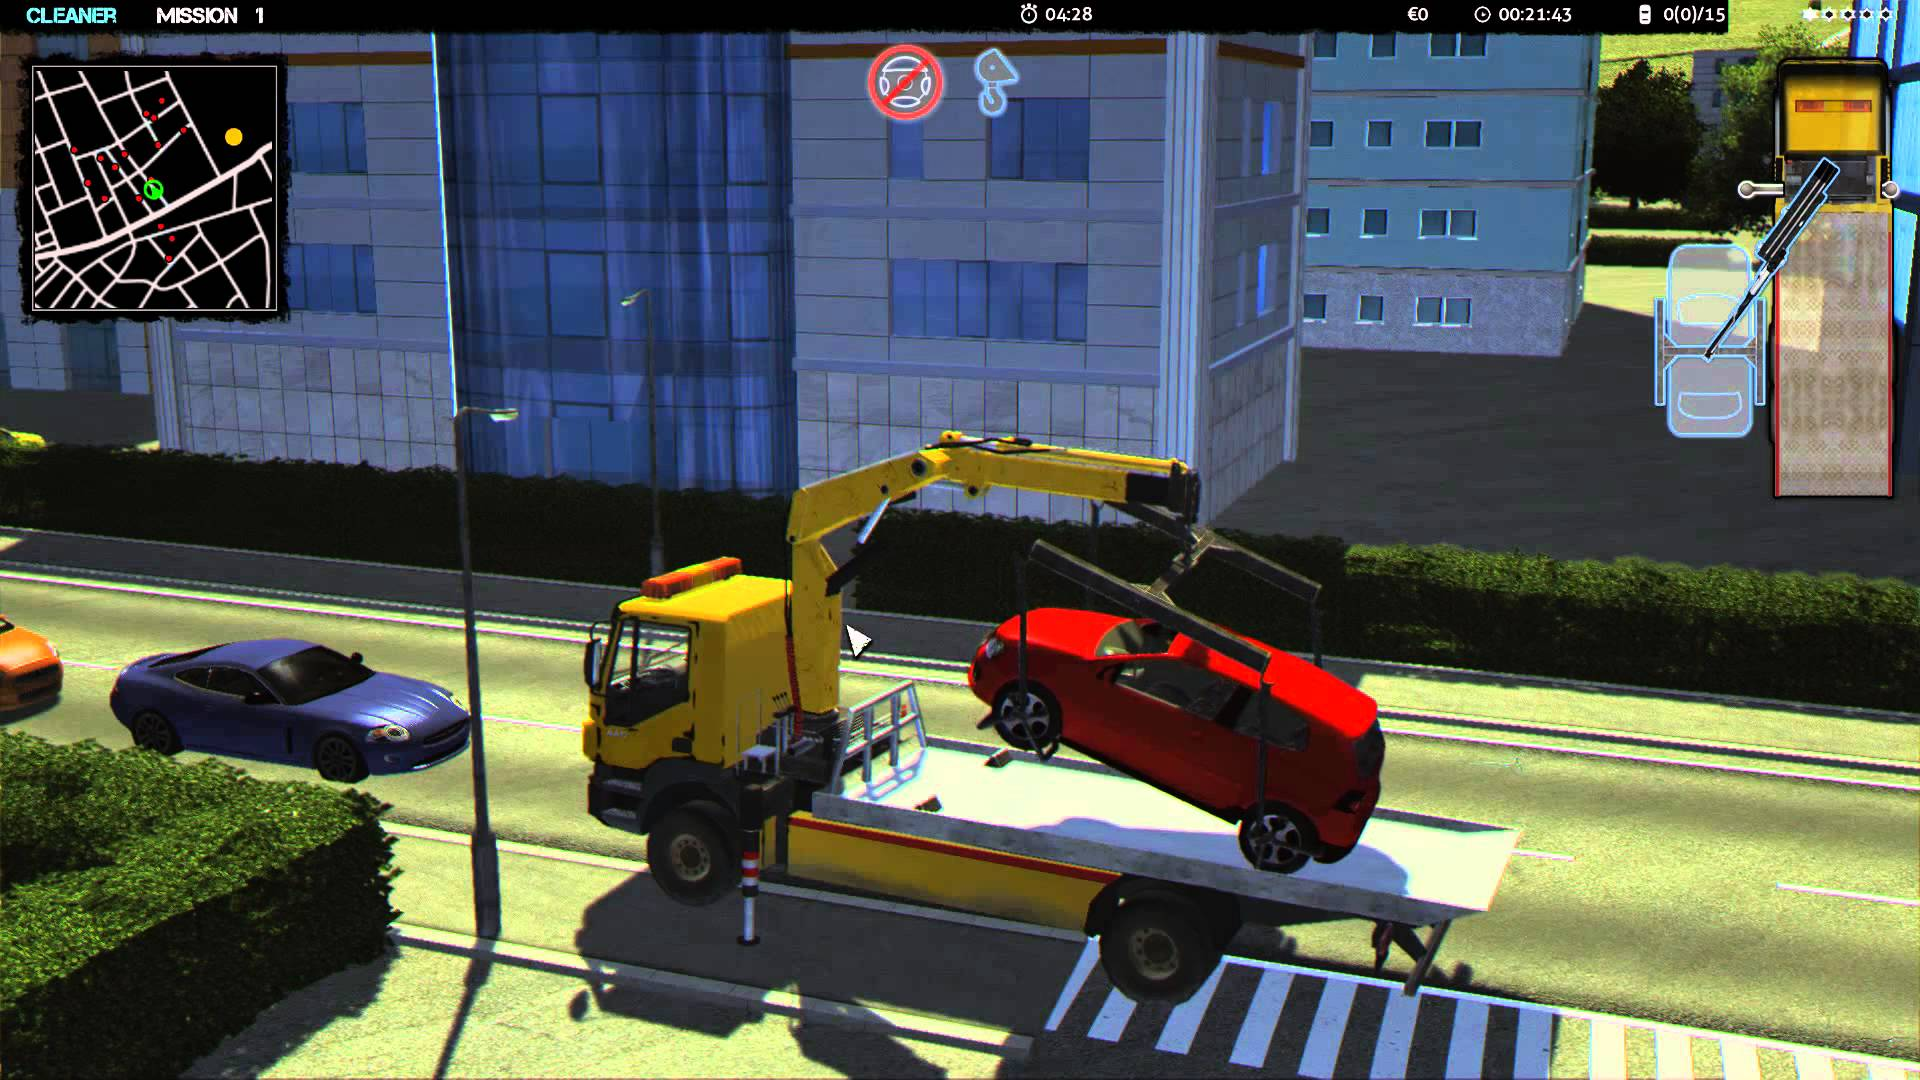 Towtruck Simulator 2015 (United Independent Entertainment GmbH) (ENG|MULTI6) [L] - Скриншот 1